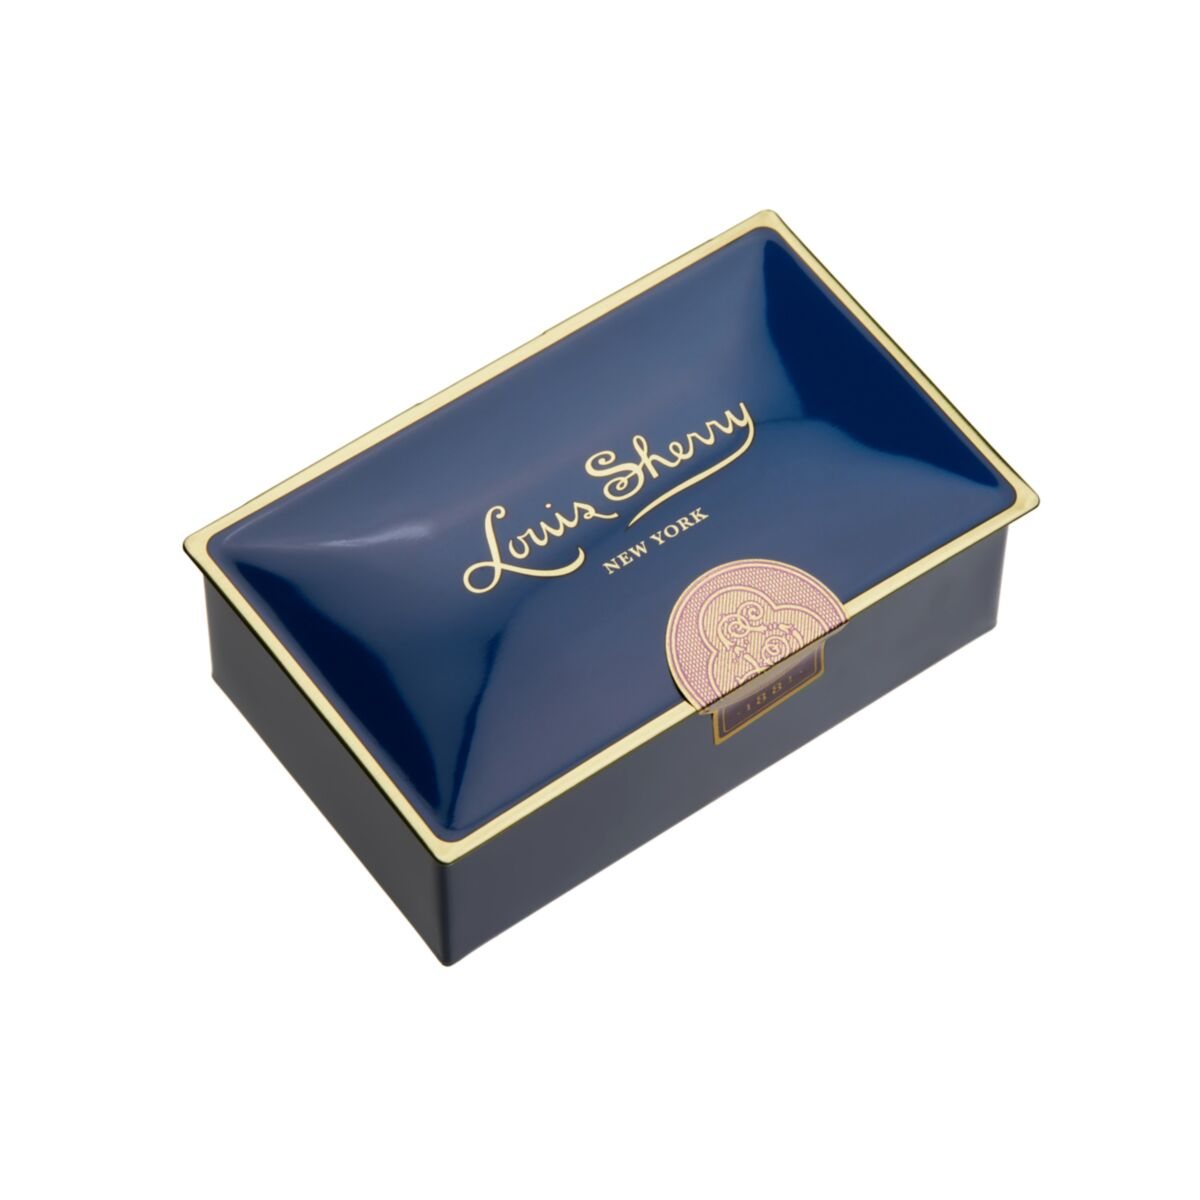 Jewel Box Chocolate Tin, Navy image